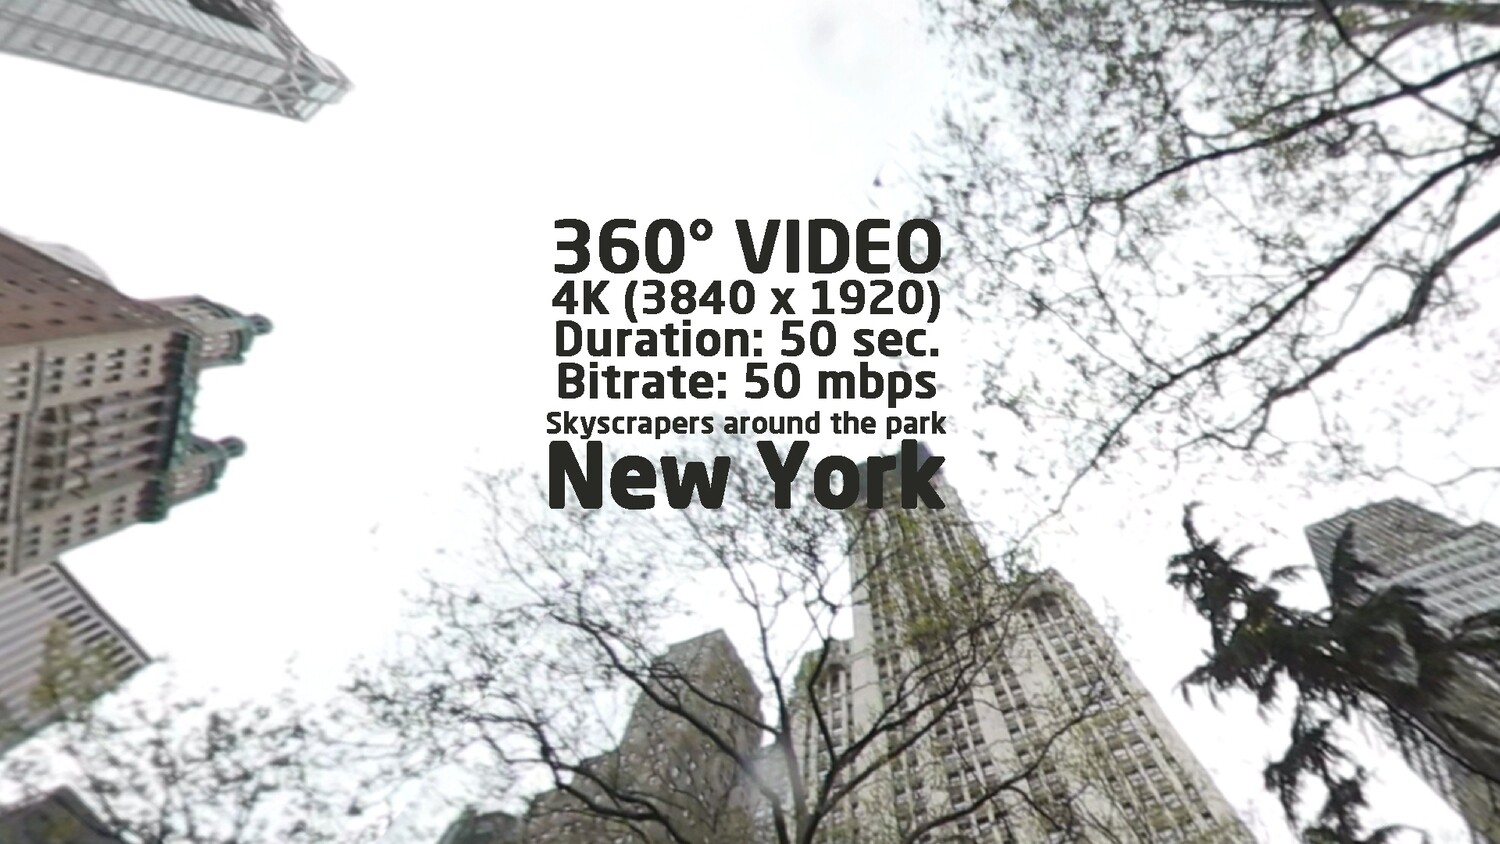 New York. View to skyscrapers around the park in 360